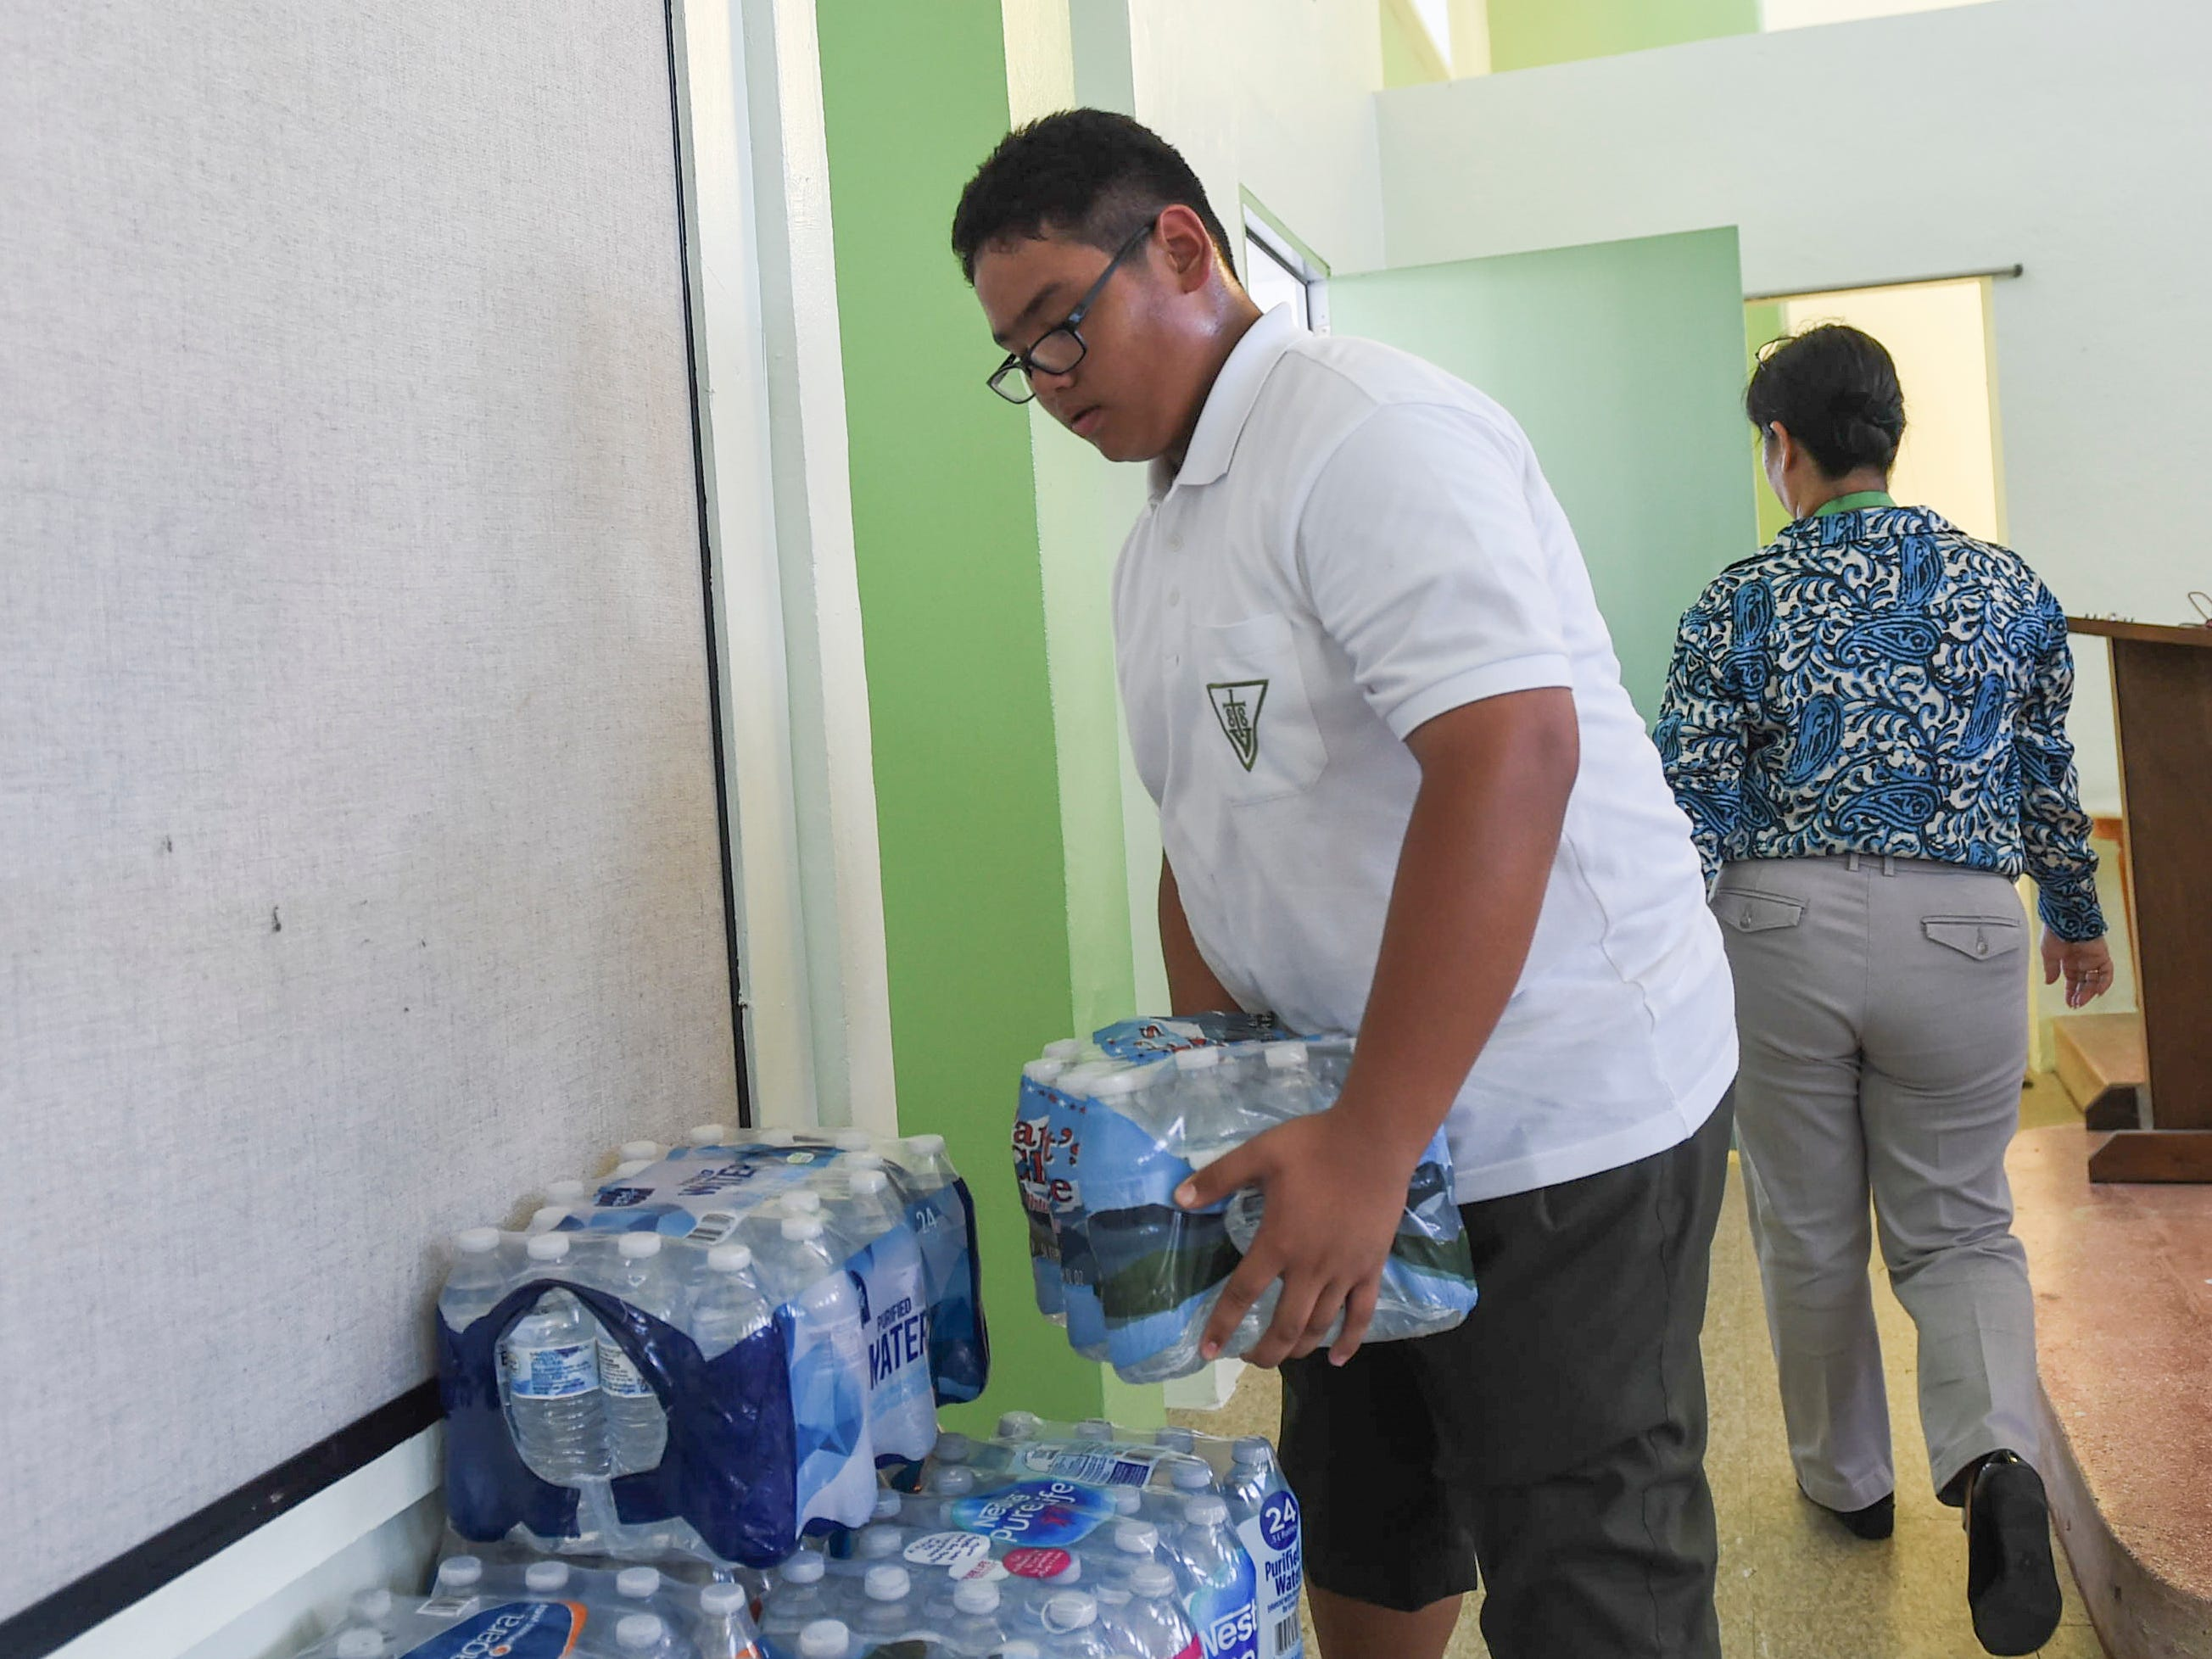 San Vicente Catholic School student Connor Leon Guerrero, 13, stacks cases of bottled water for a Super Typhoon Yutu relief effort spearheaded by local organizations Prutehi Litekyan - Save Ritidian and Håya Foundation at the San Vicente Catholic School campus, Oct. 29, 2018.